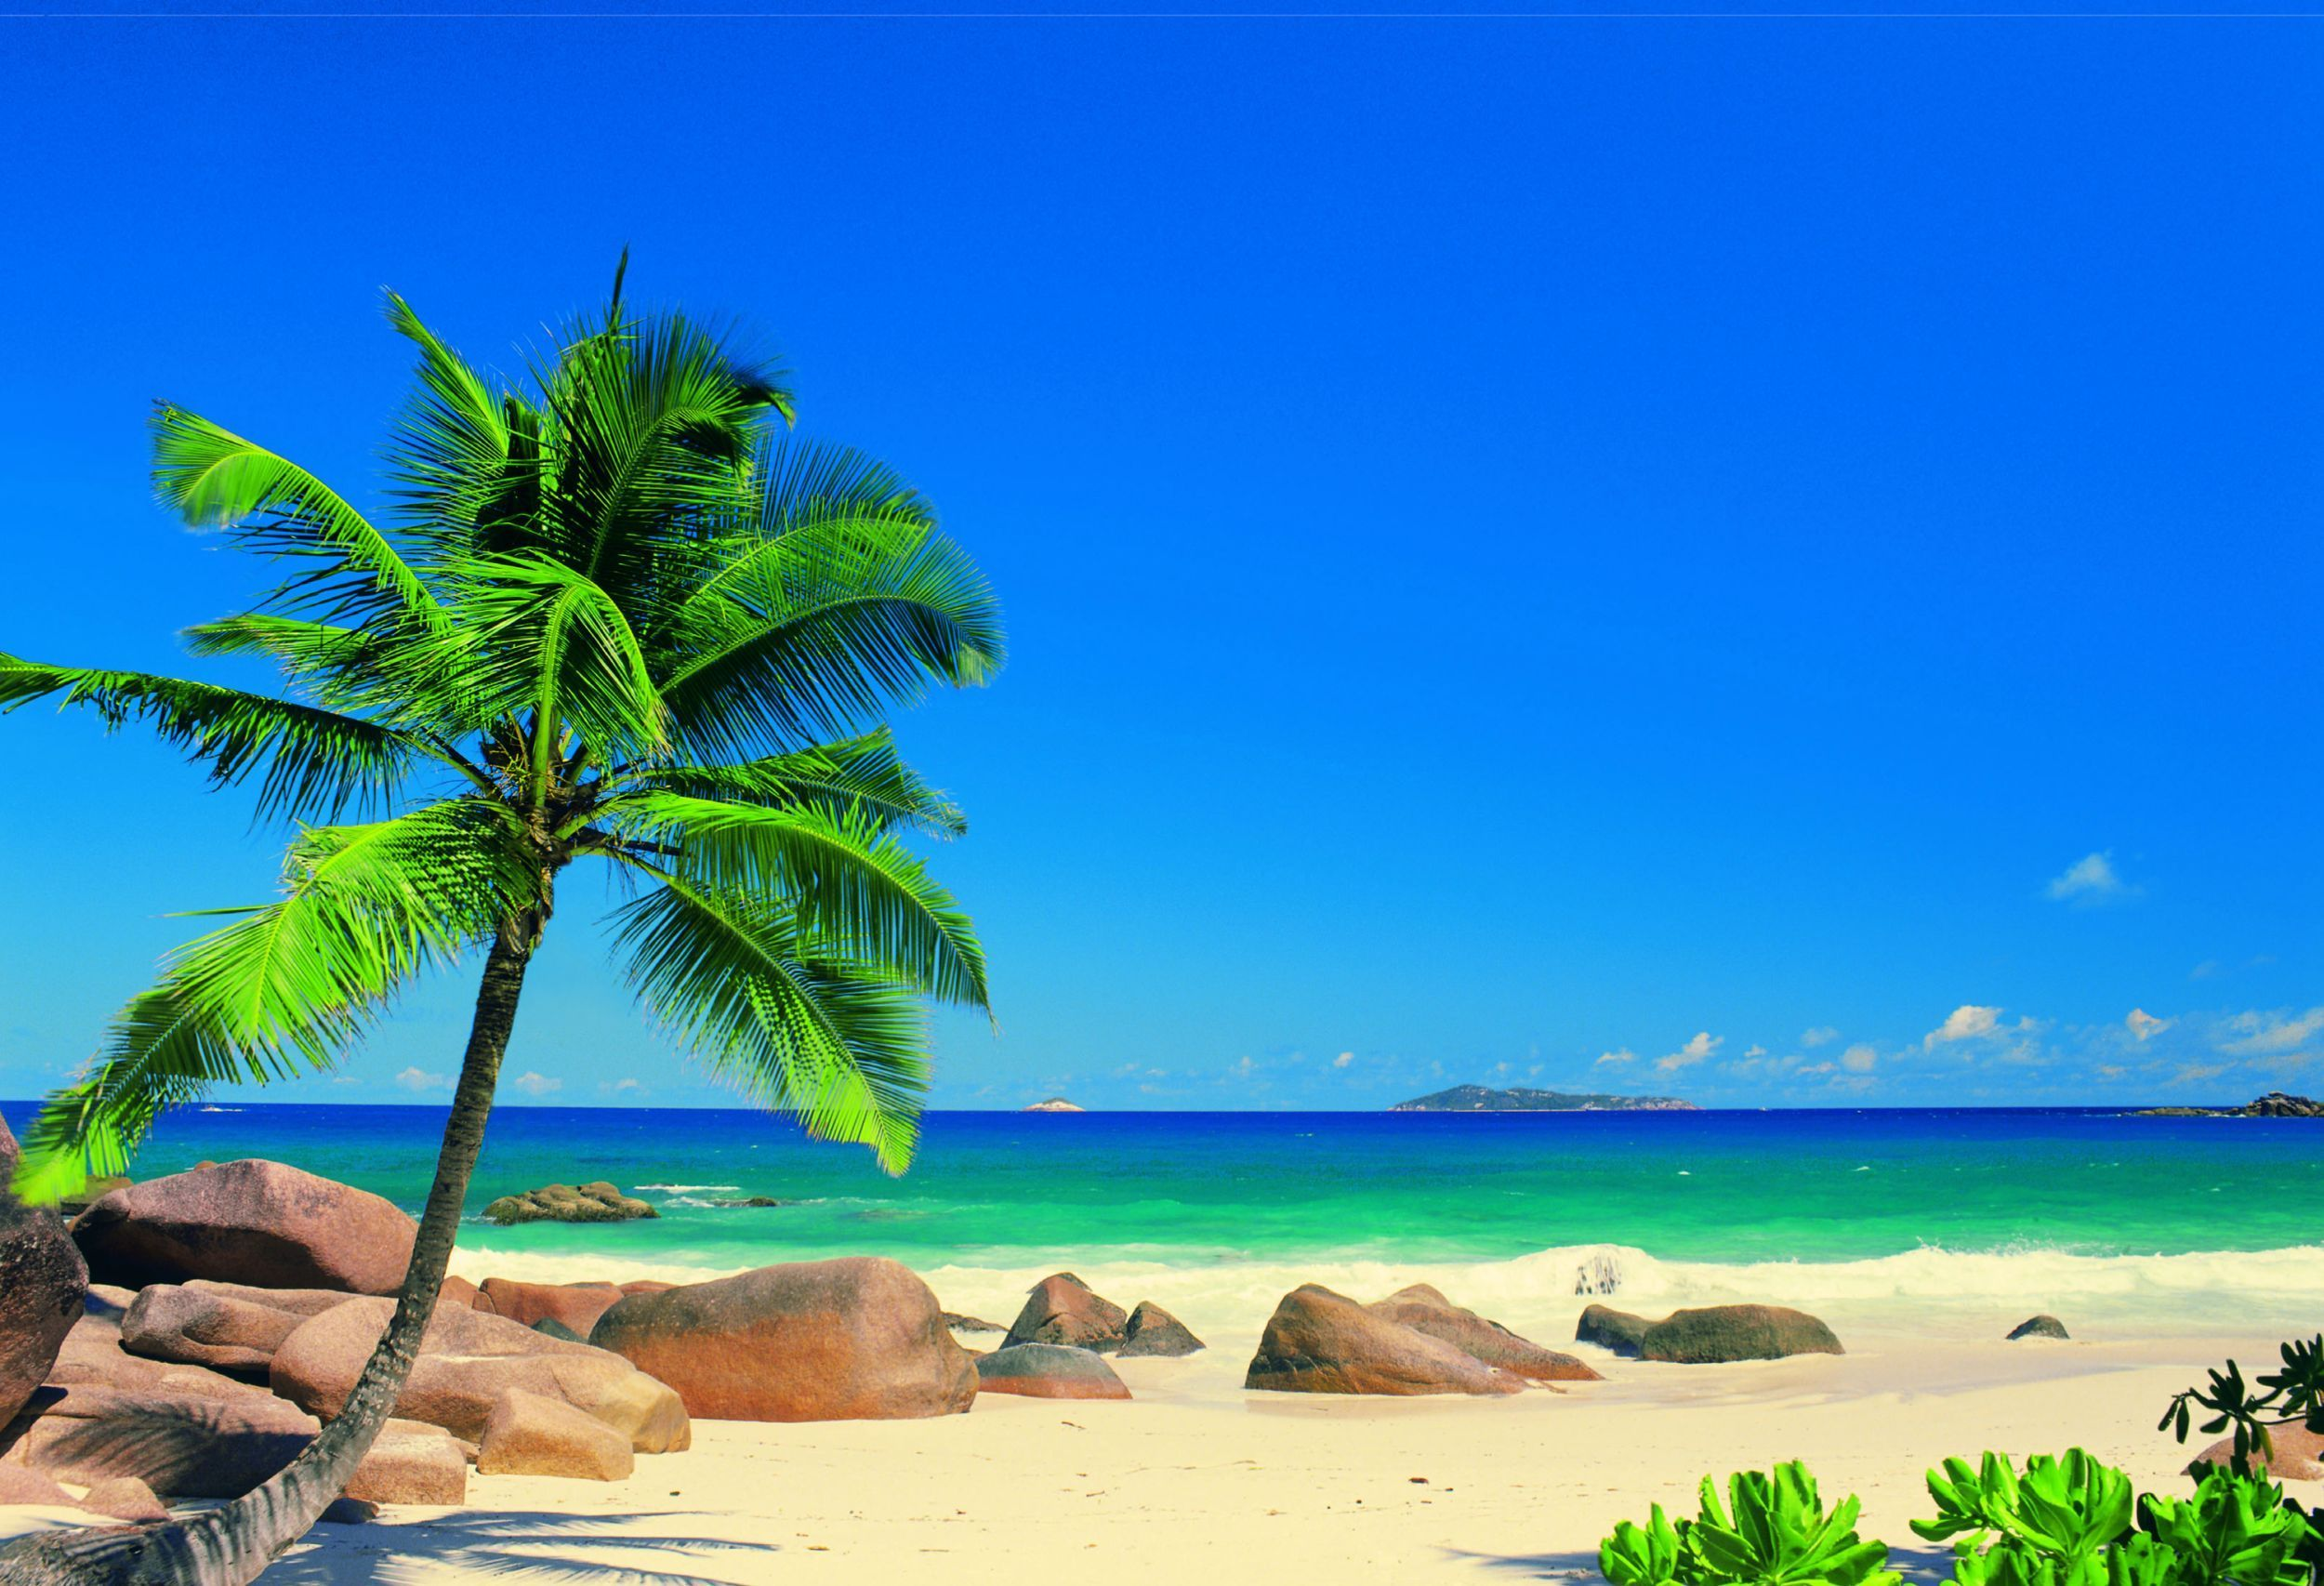 download these 42 high res caribbean wallpaper backgrounds here for free